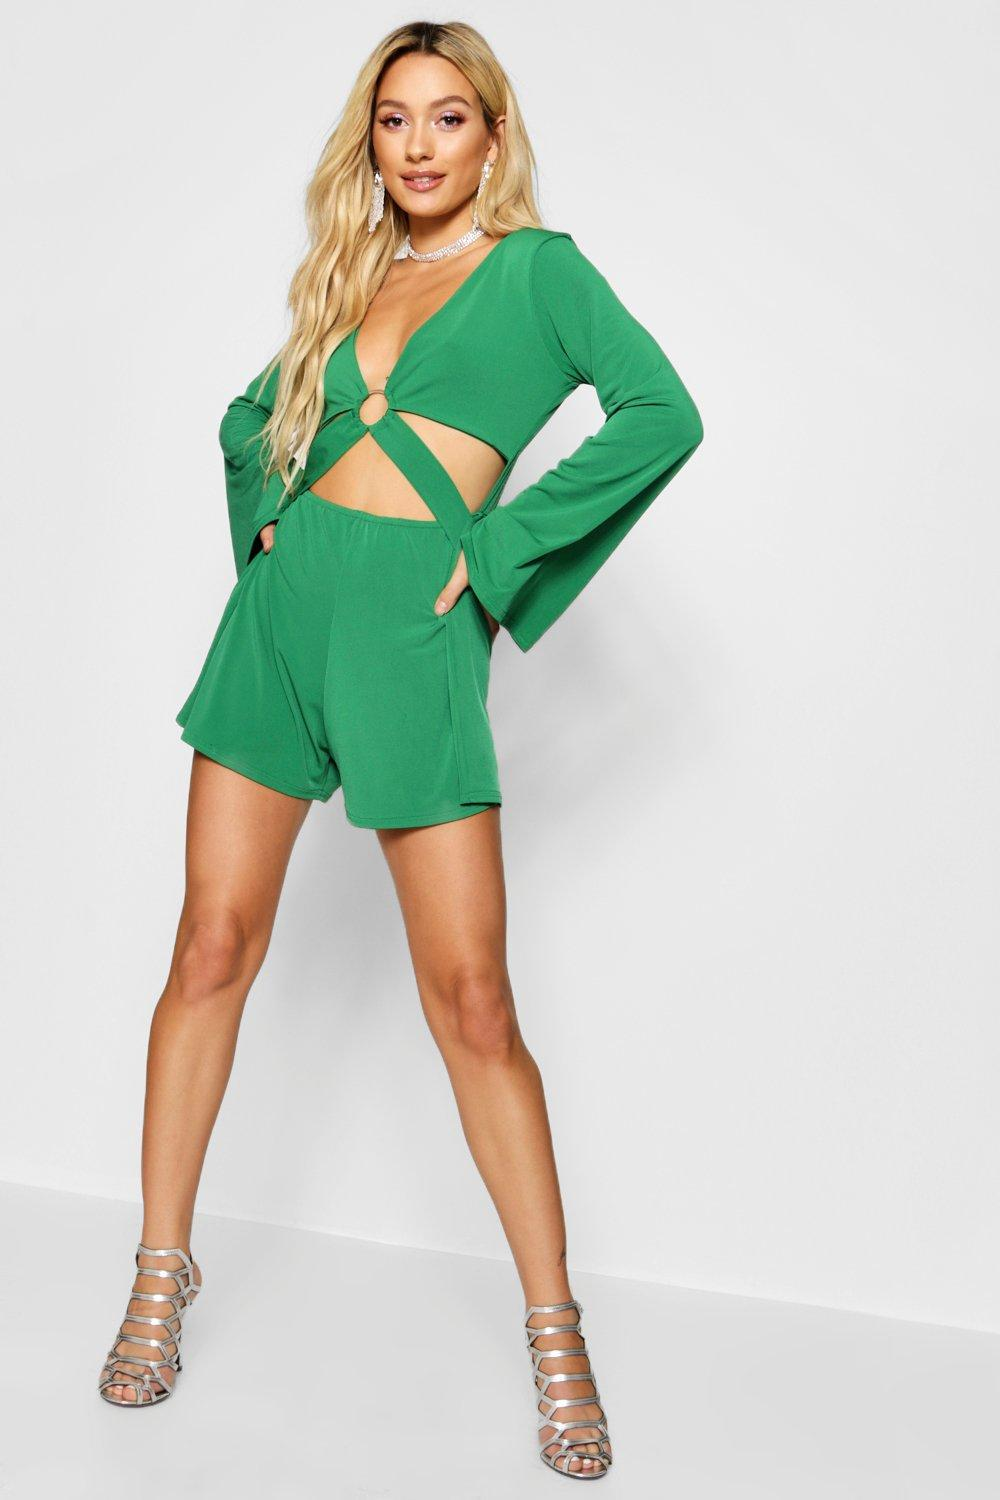 42a8115c5f Lyst - Boohoo Cut Front Ring Detail Playsuit in Green